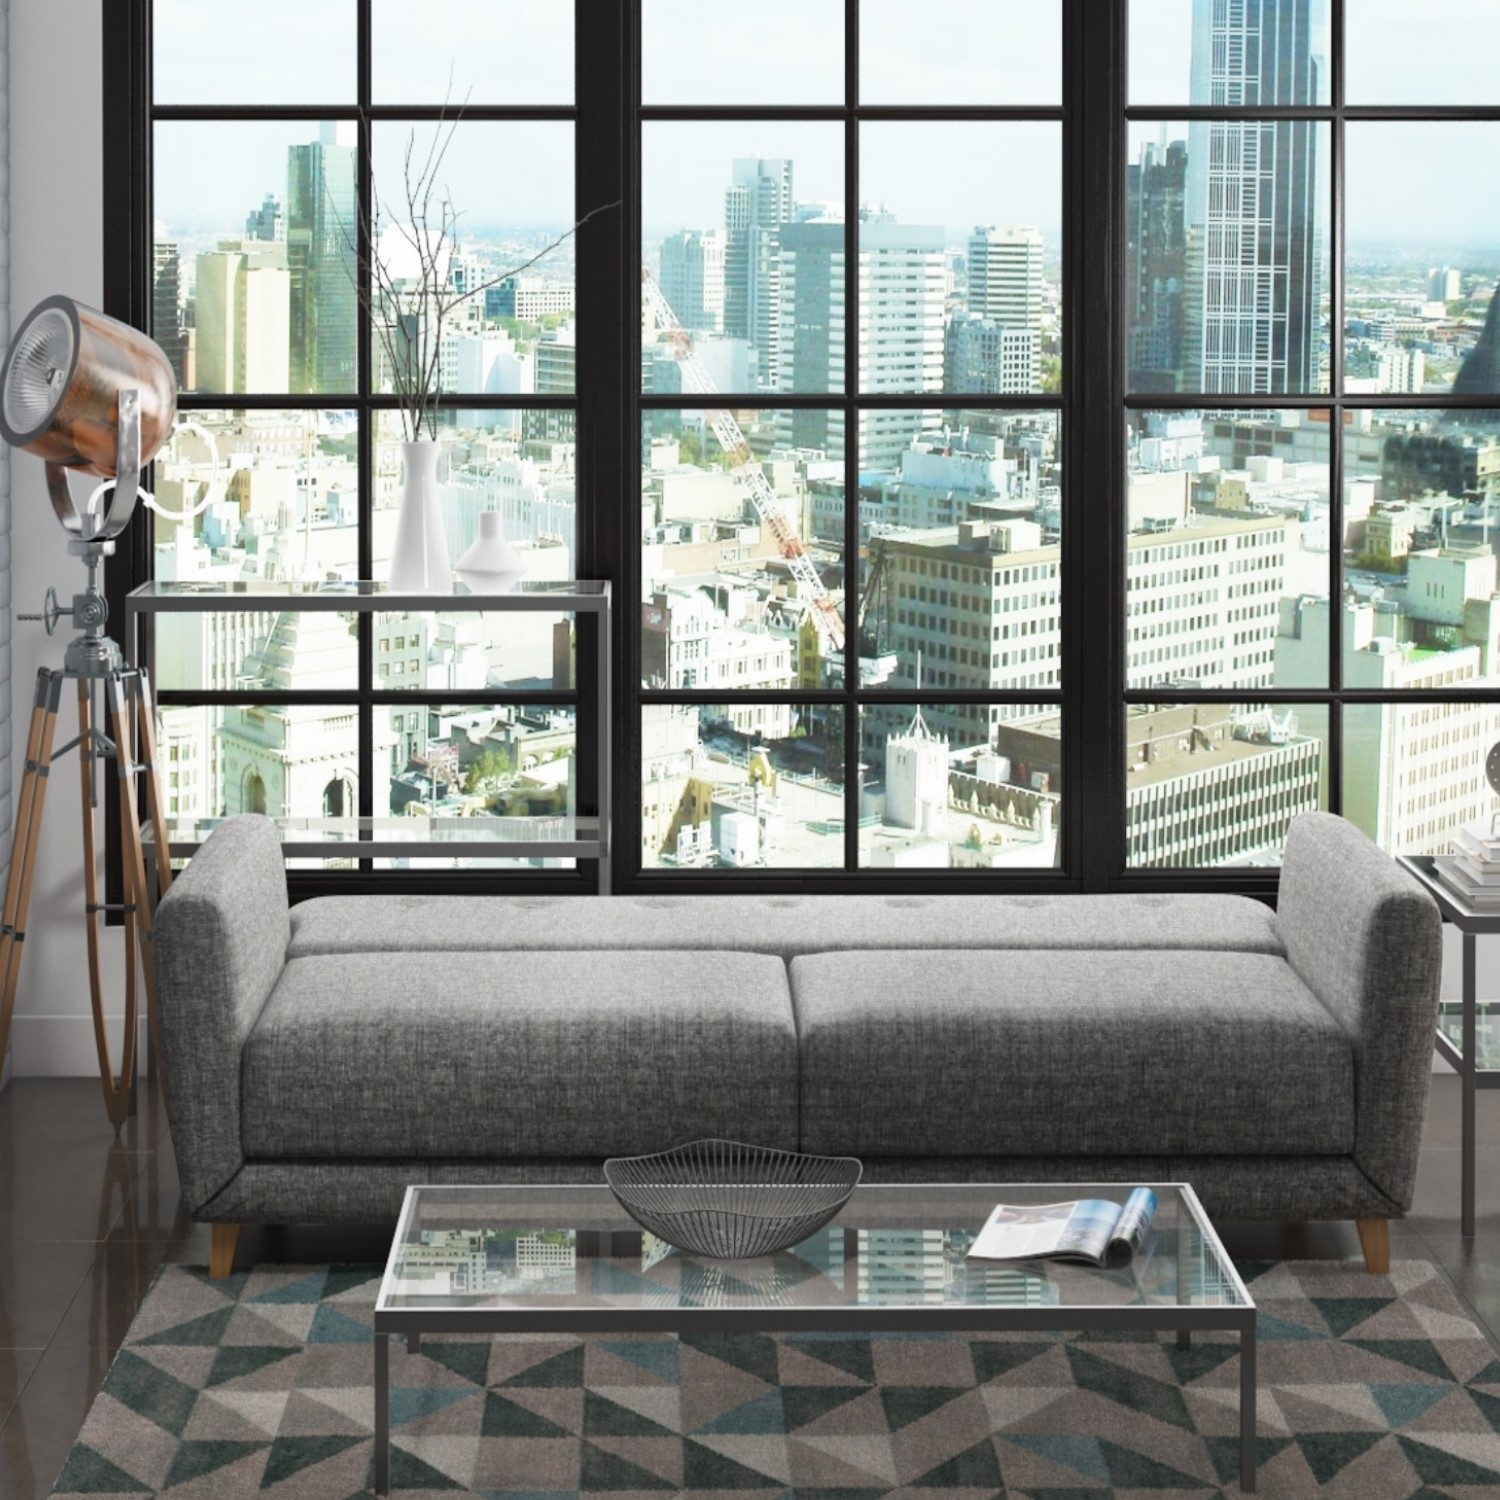 Admirable Archer Grey 3 Seater Sofa Bed Sleeps 2 Andrewgaddart Wooden Chair Designs For Living Room Andrewgaddartcom